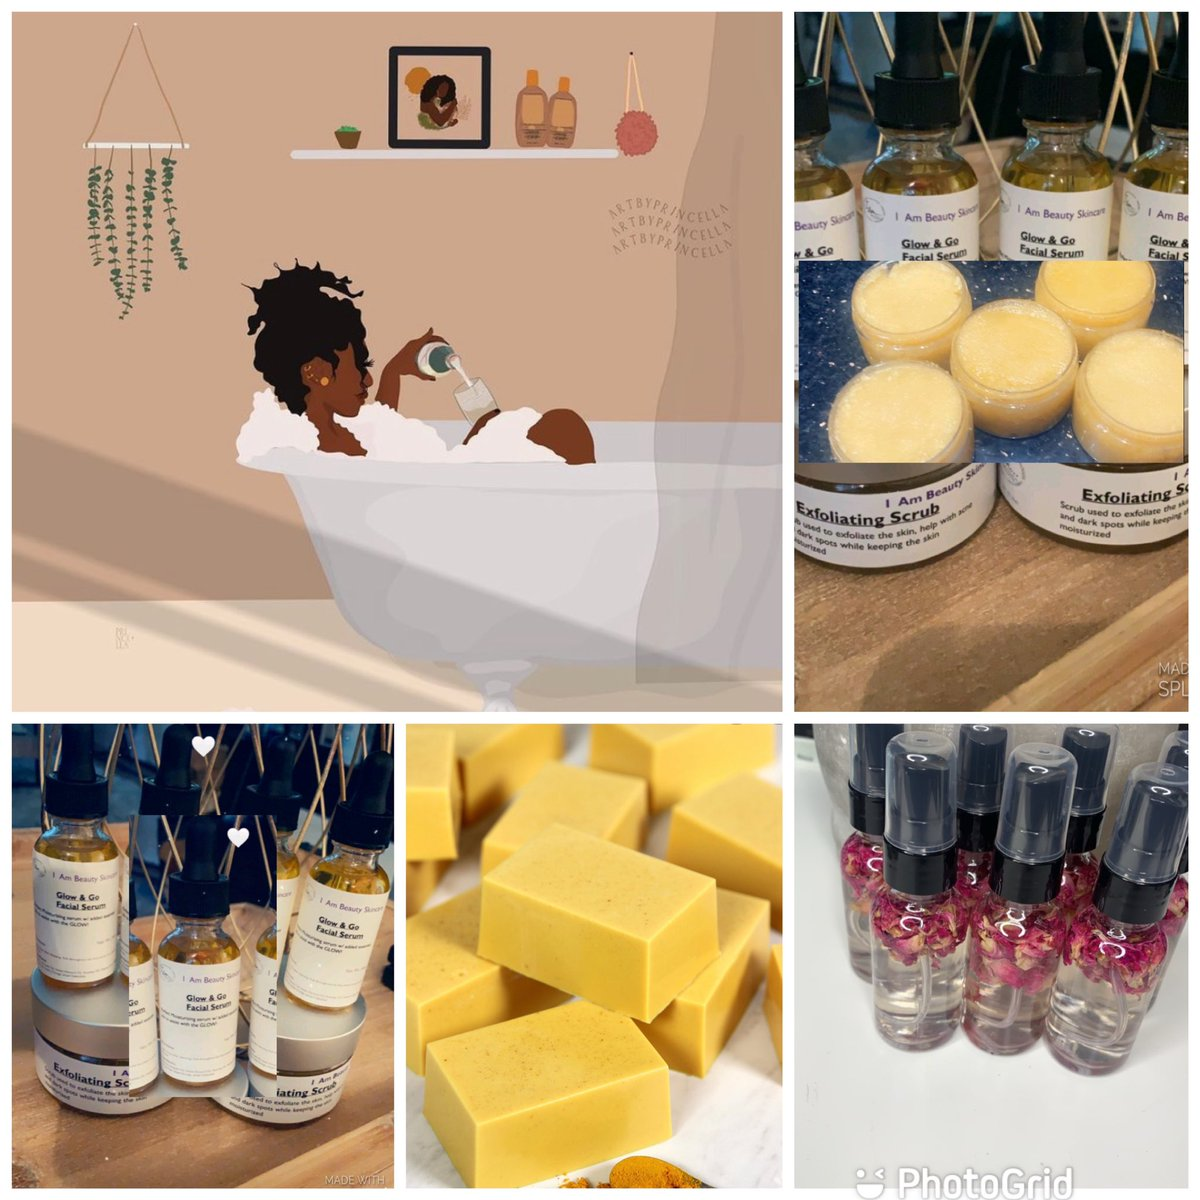 All Natural Skincare Products  #naturalskincare #turmericsoap #turmeric #skincareproducts #esthetician #BlackOwnedBusiness #BlackGirlMagic #skincareproducts #skincaretips